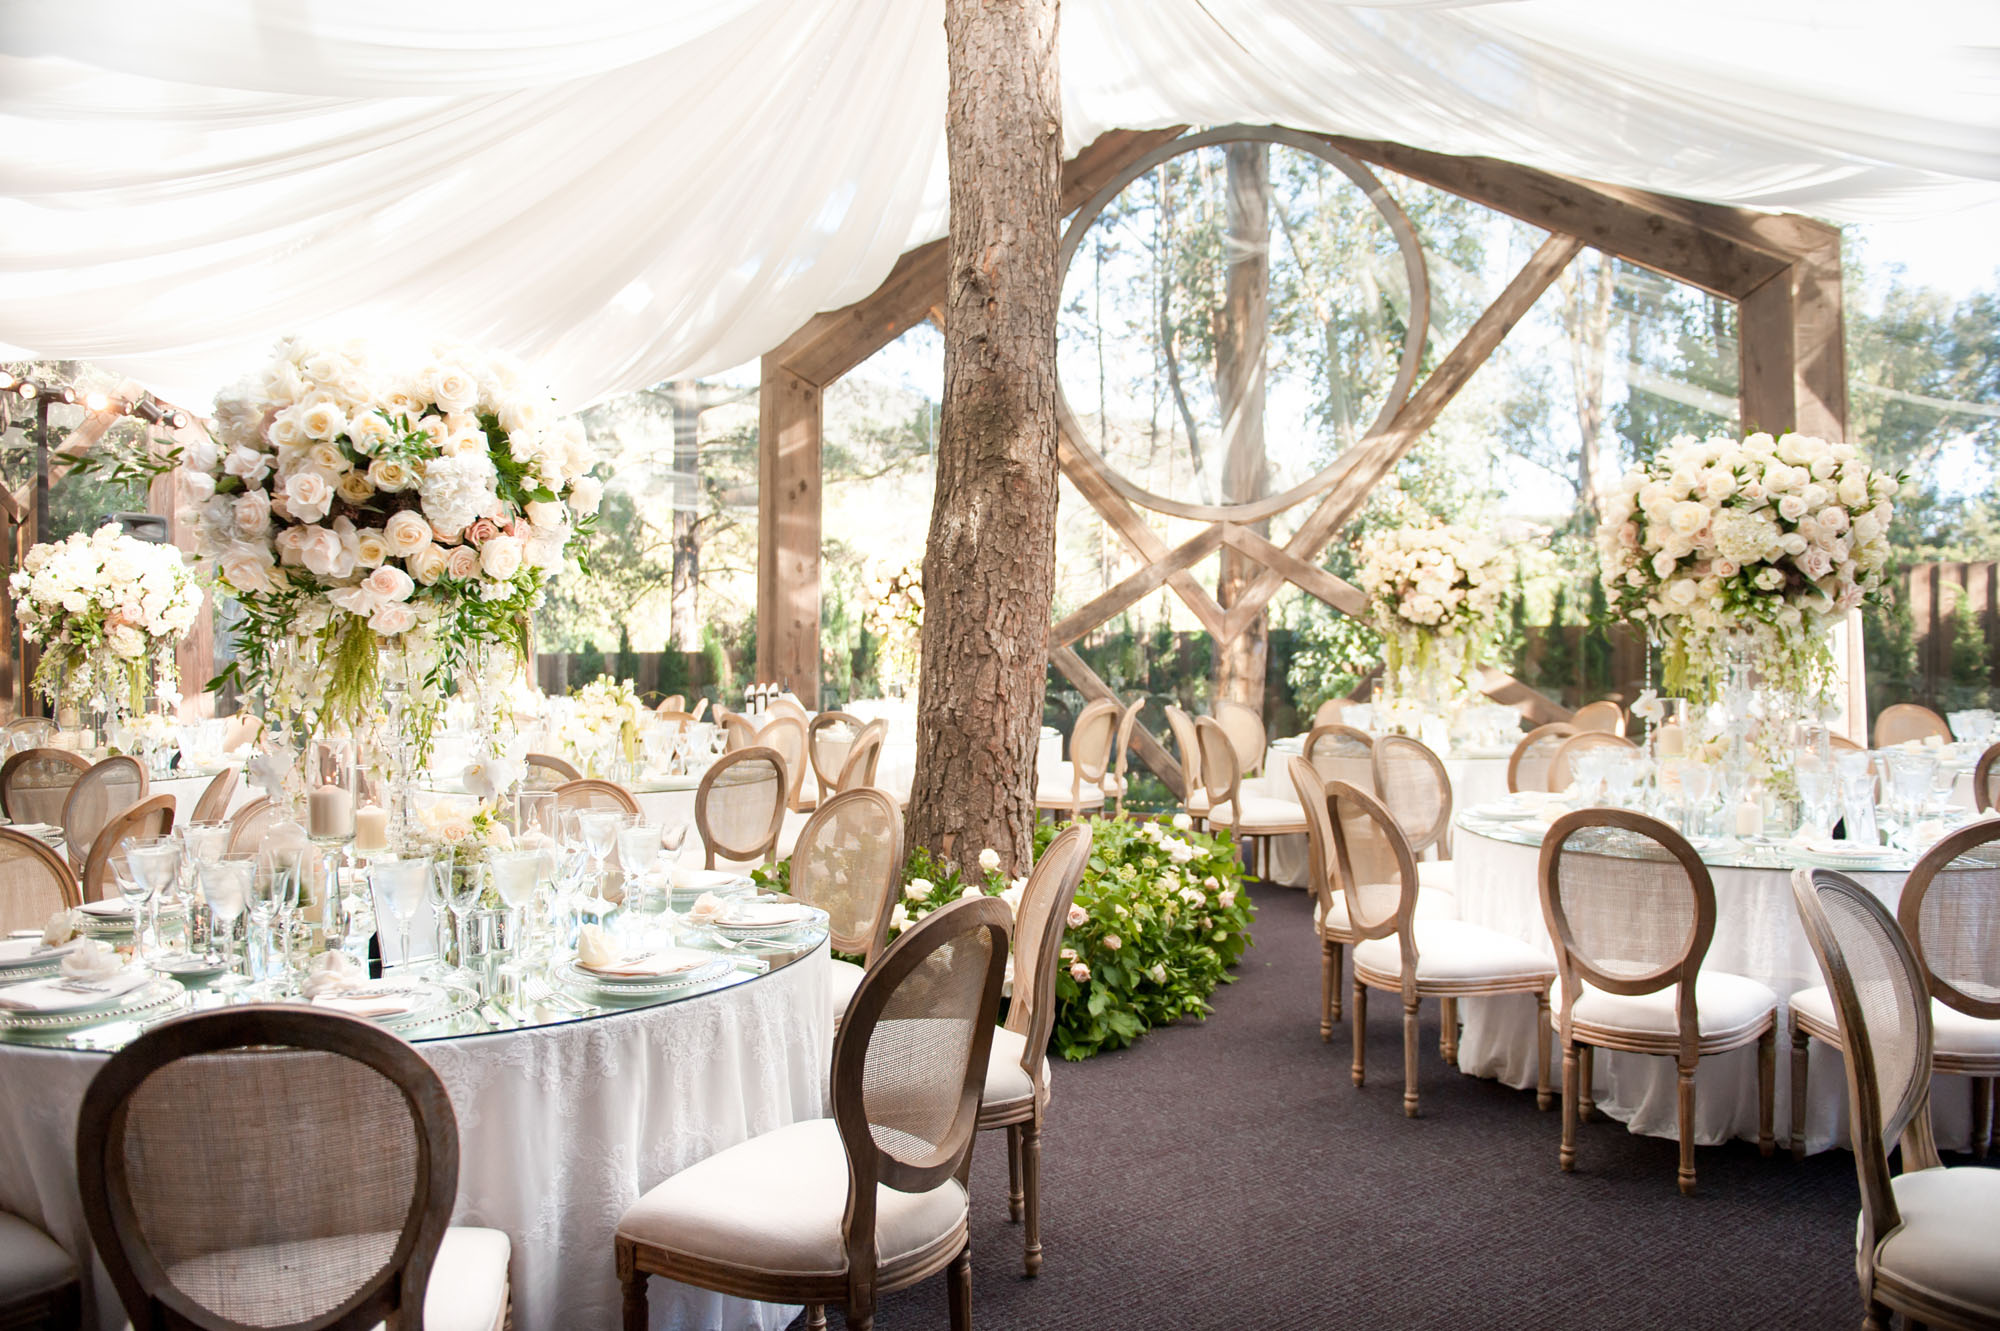 garden wedding ideas tent wedding reception clear tent wood chairs greenery centerpieces